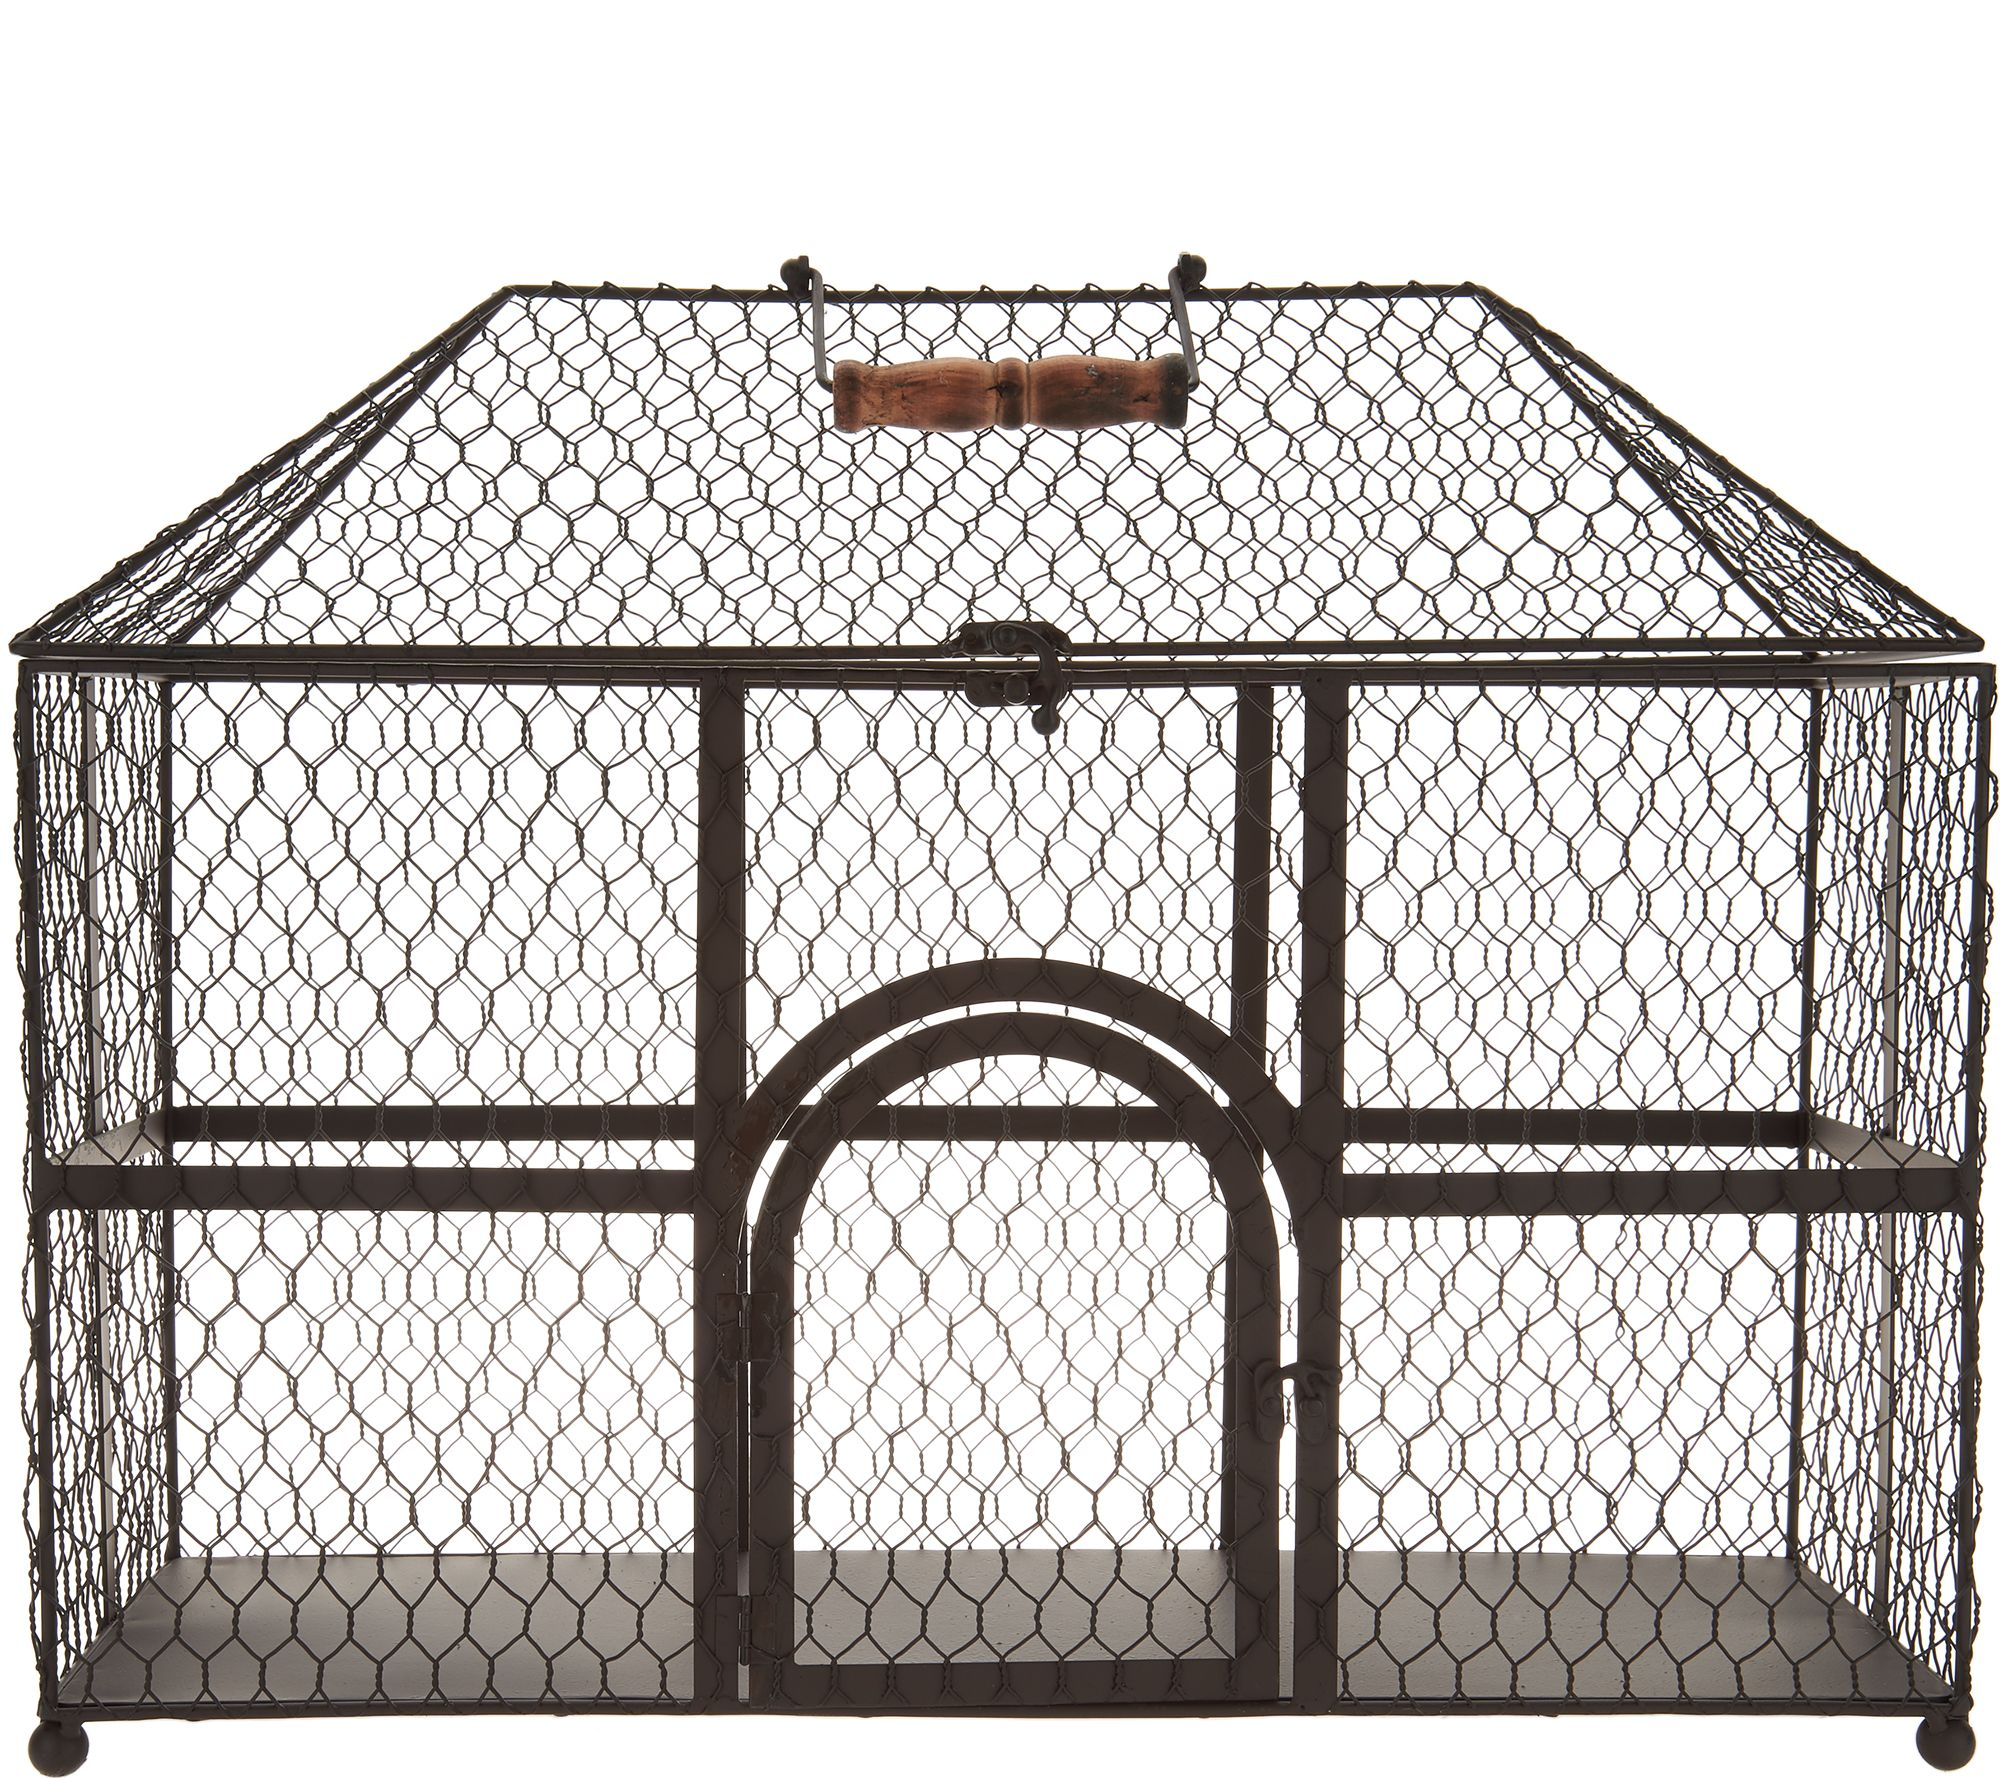 Set of 2 Wire Decorative Chicken Coops by Valerie - Page 1 — QVC.com